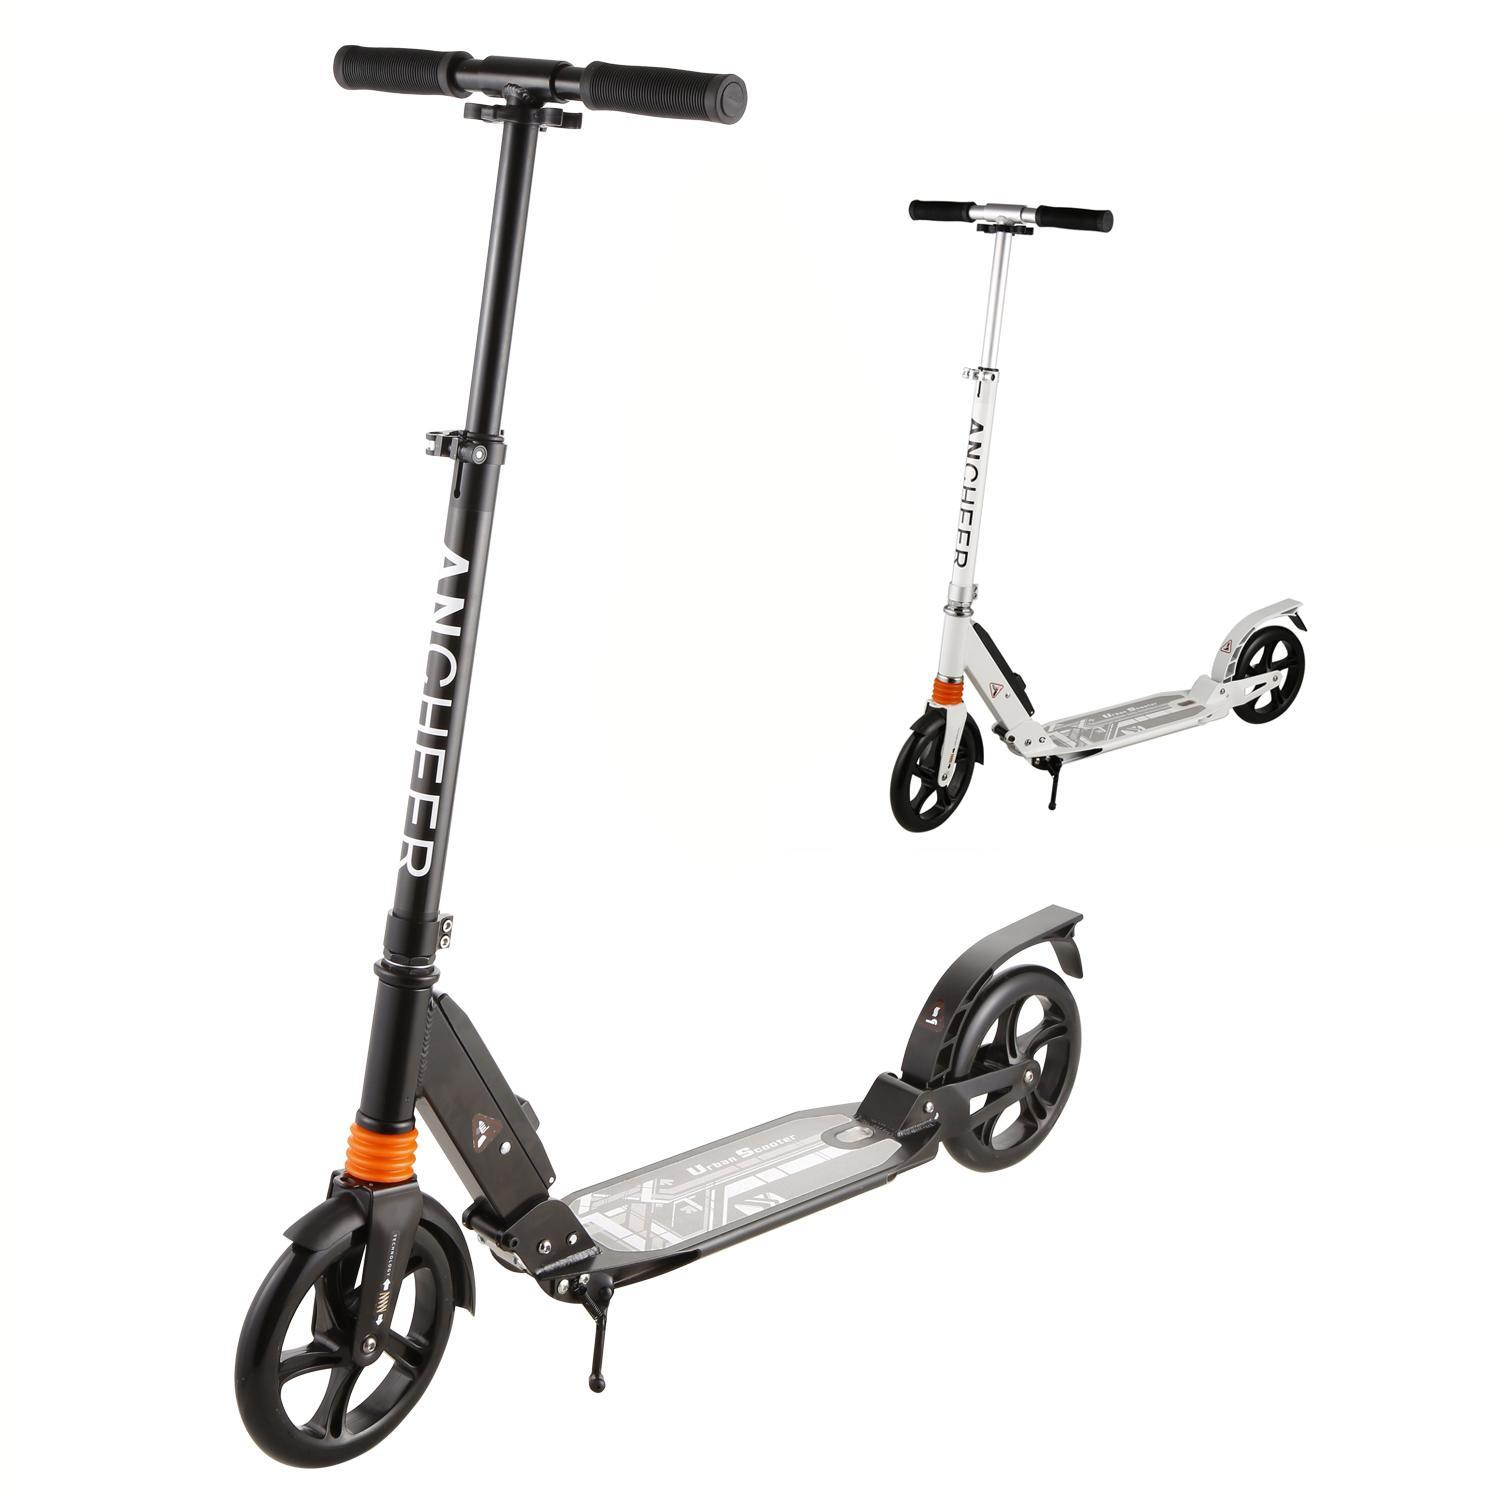 Adult Kick Scooter, Foldable Lightweight 3 Levels Adjustable Height 2-Wheel Kick Scooter... by